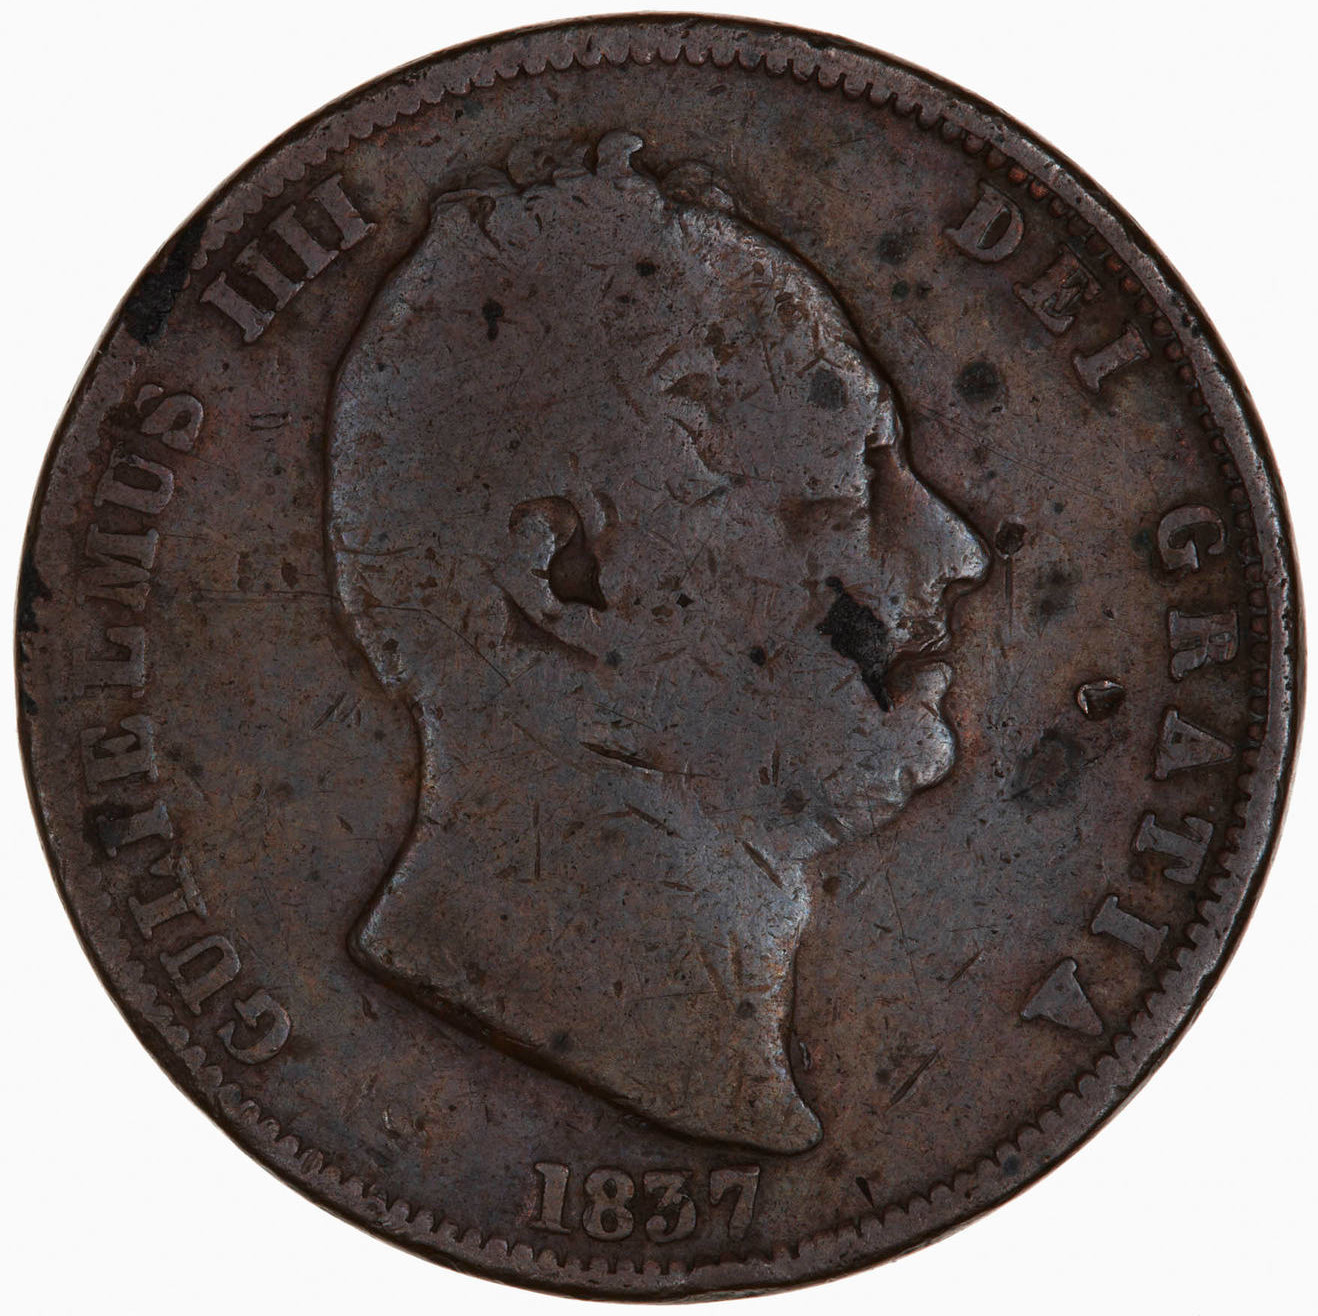 Halfpenny 1837: Photo Coin - Halfpenny, William IV, Great Britain, 1837